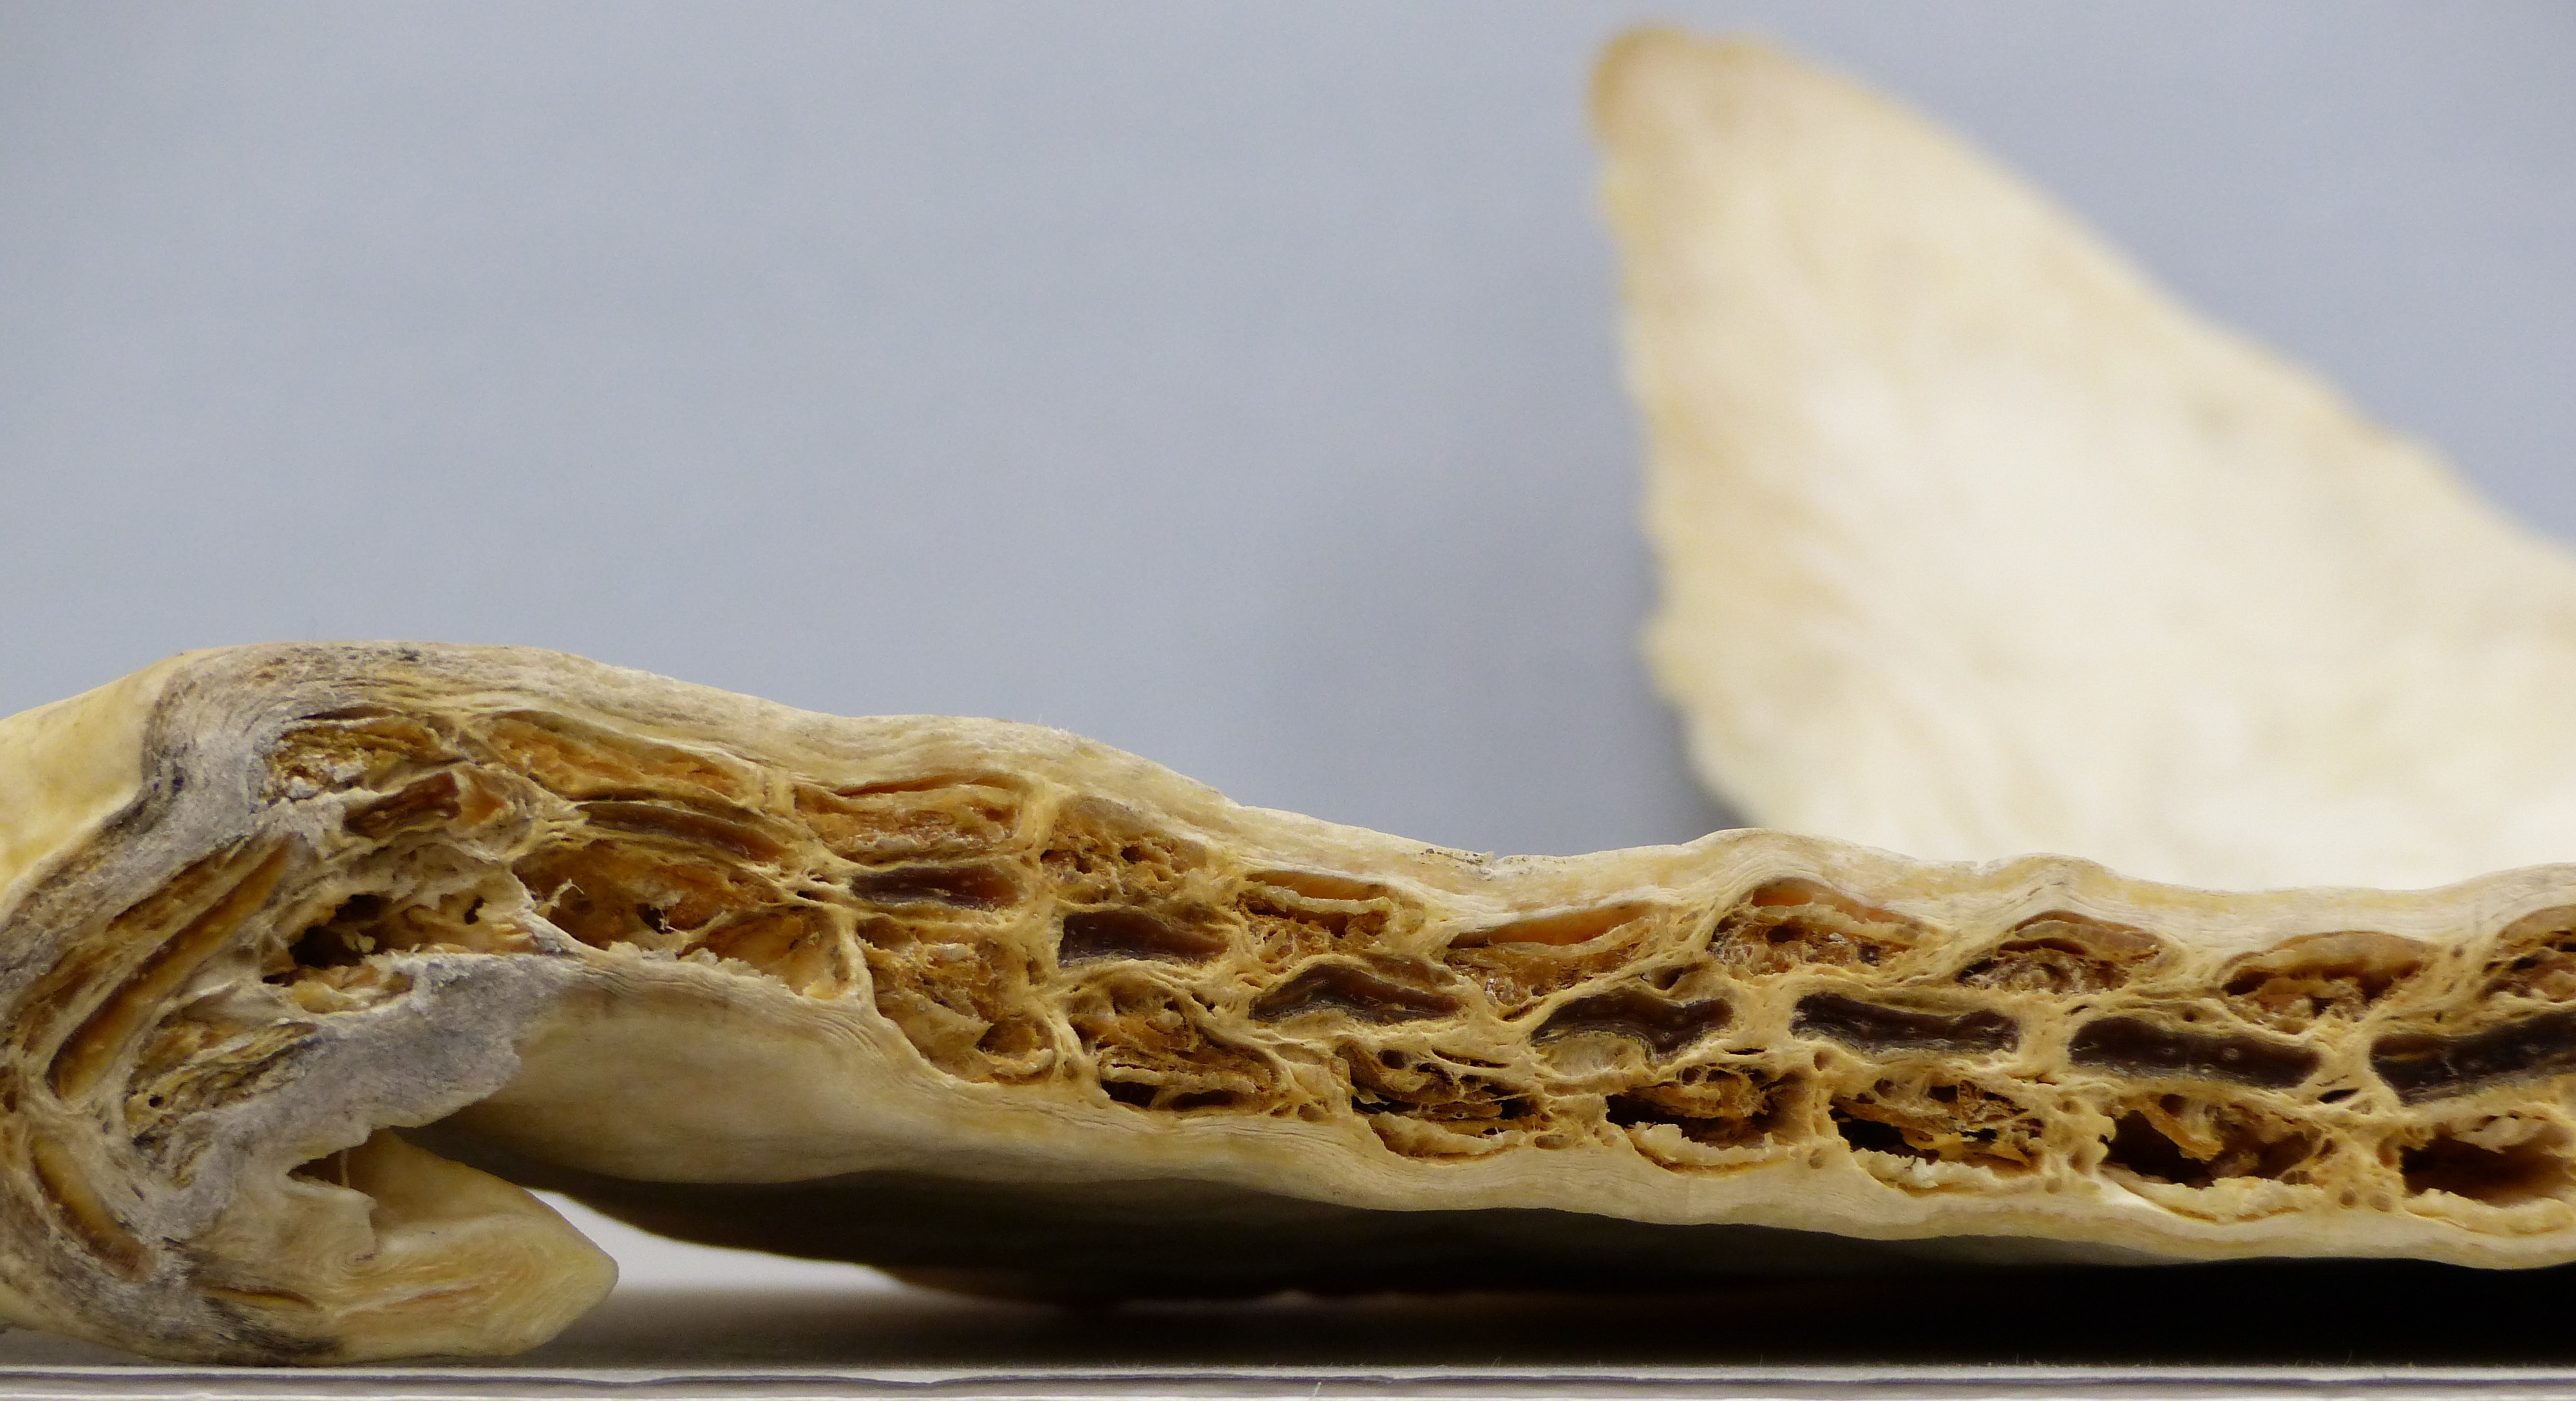 Close-up of a white and yellow honeycomb-like structure